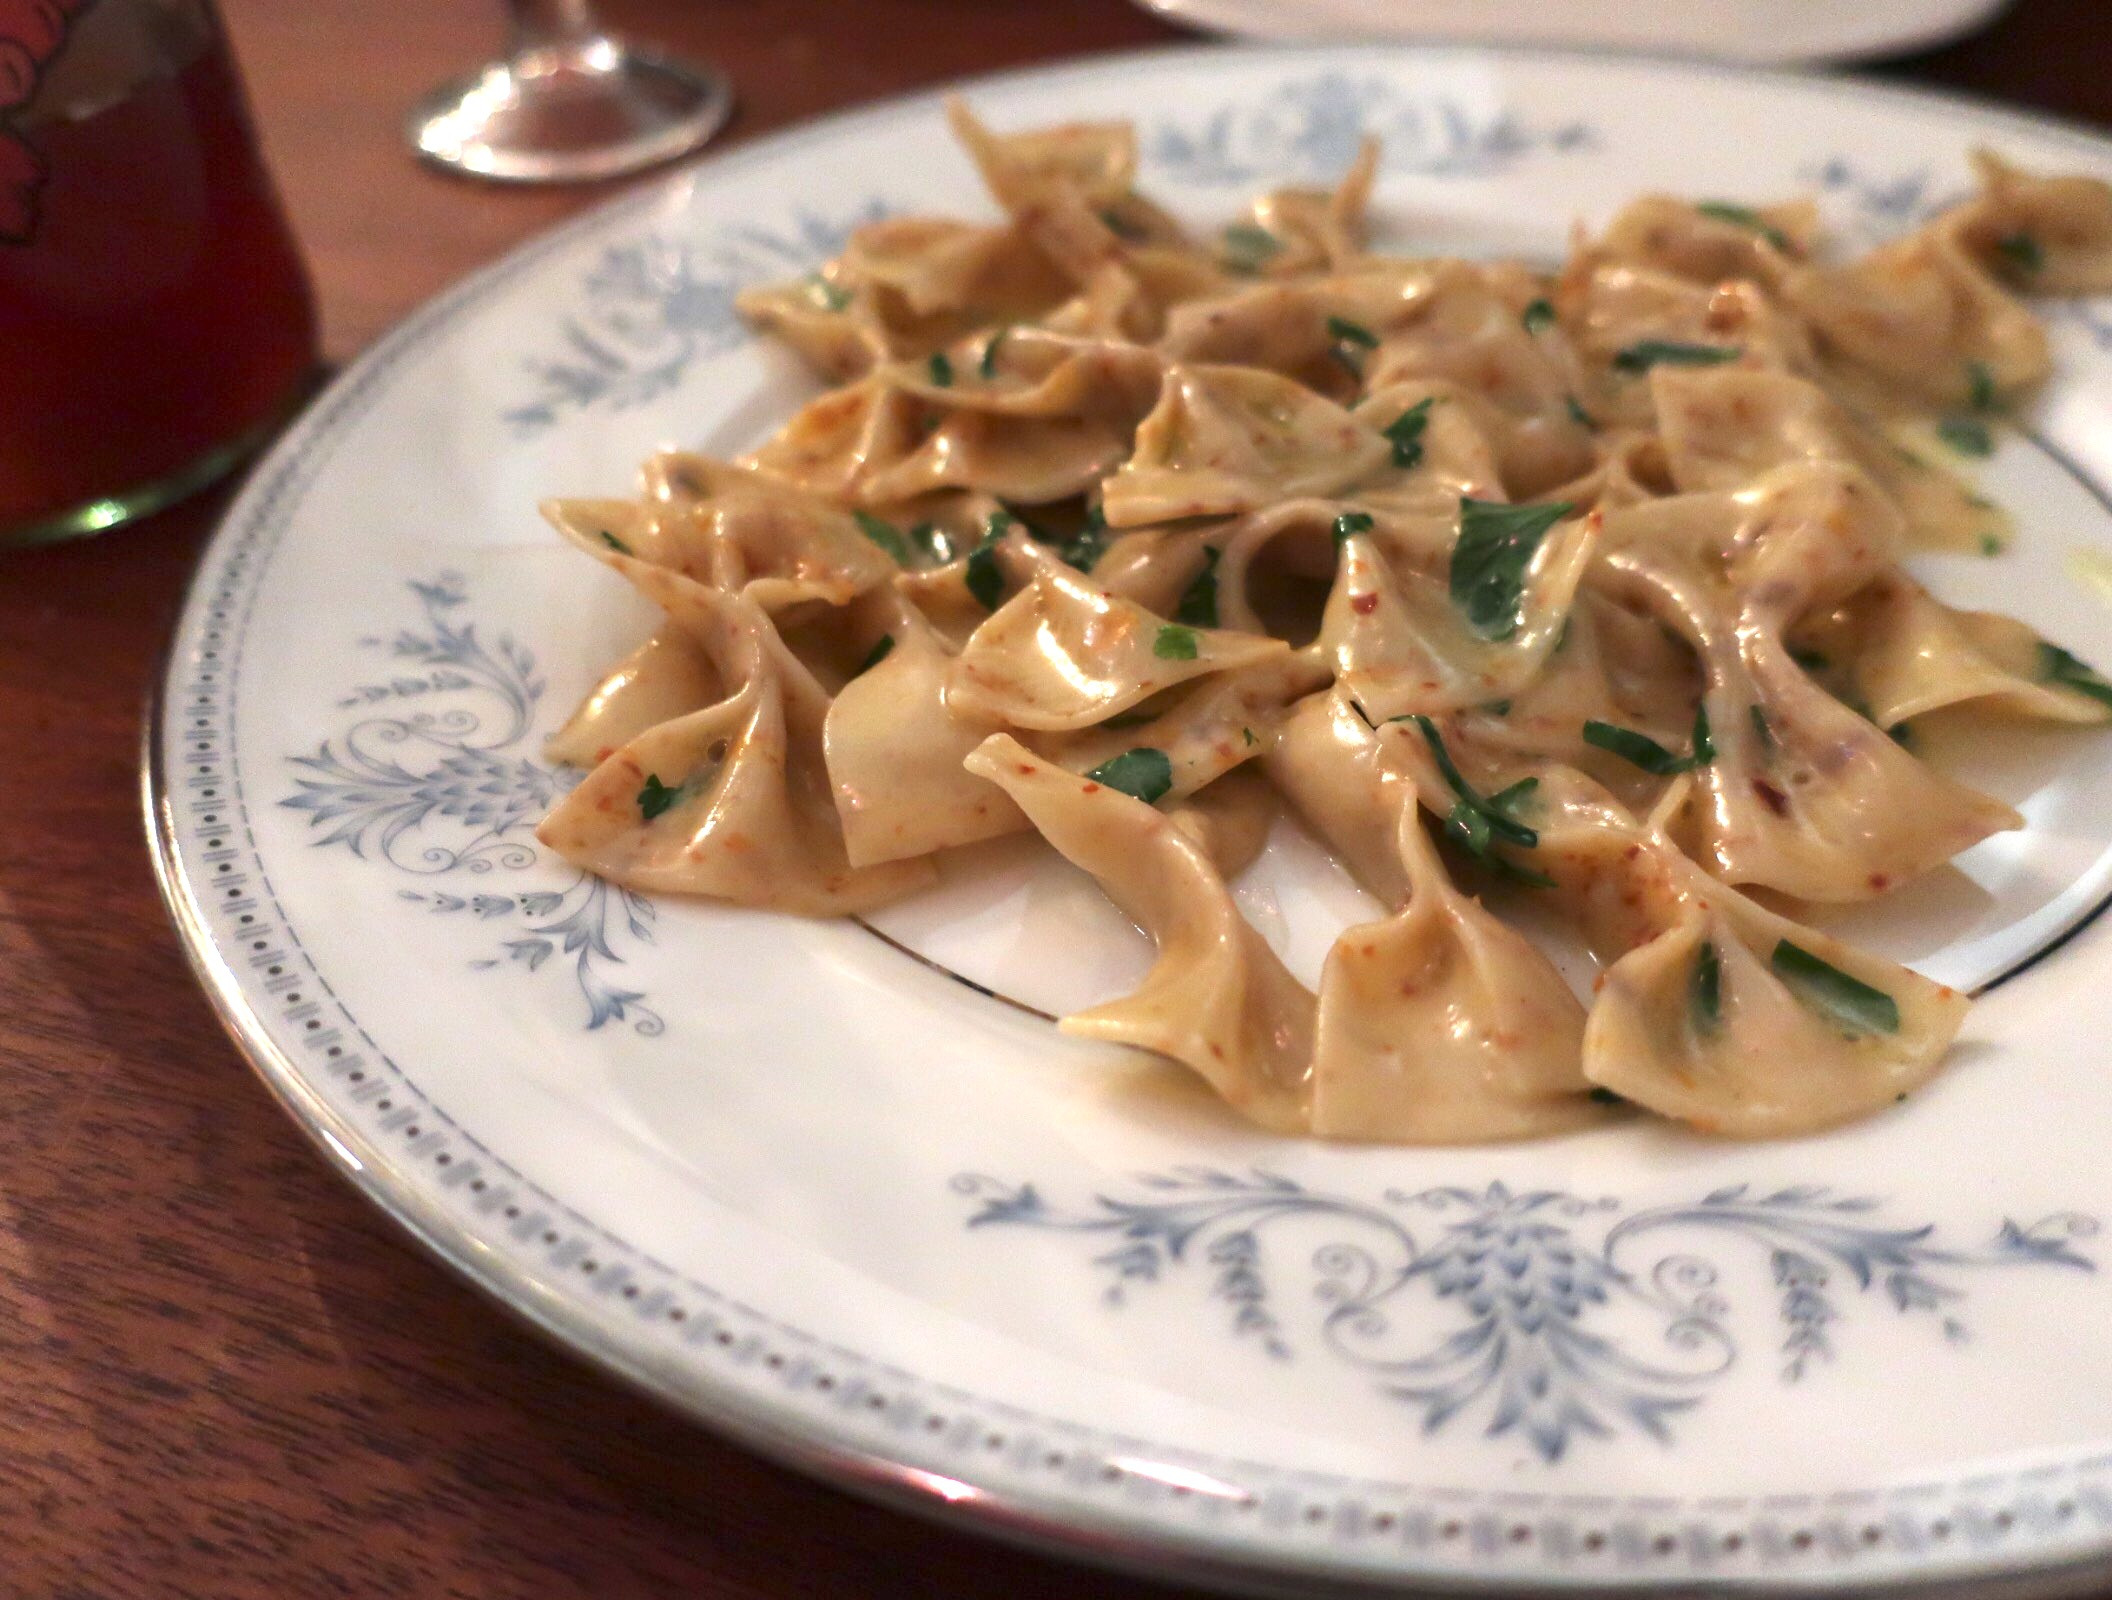 Bow Tie Pasta and Other Fun Shapes Are a Restaurant Trend Worth Embracing